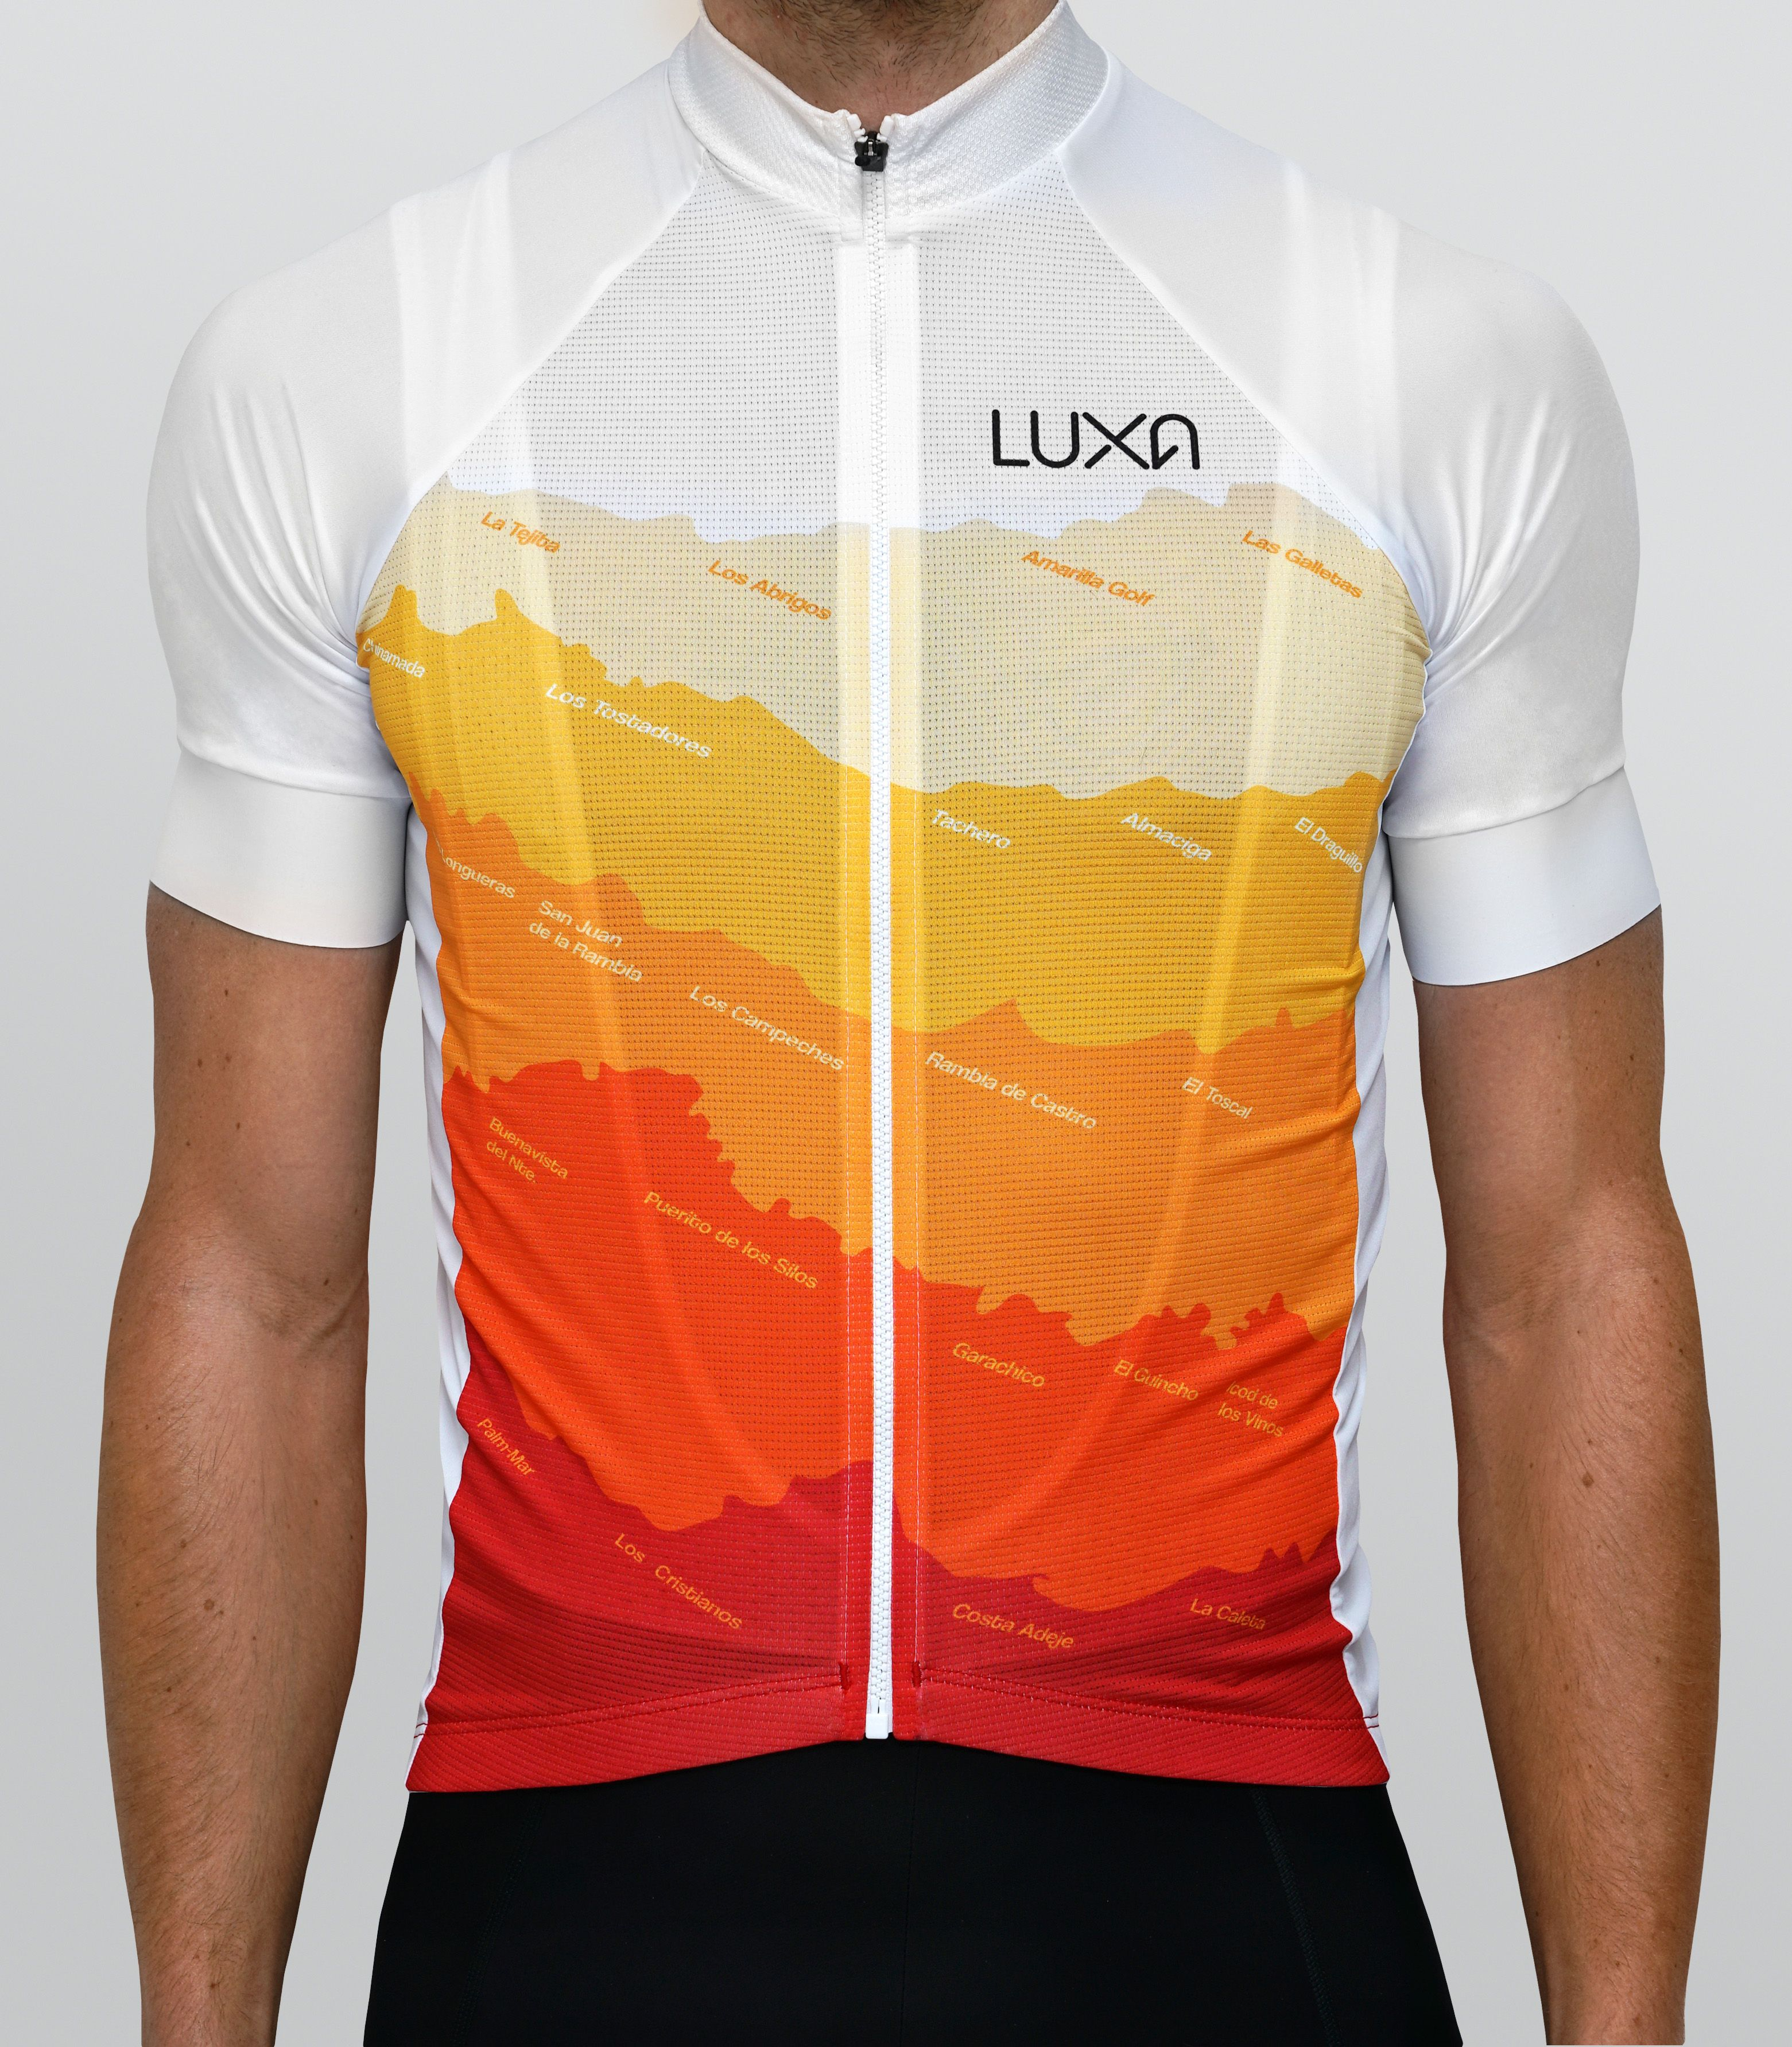 cb89d237df3 Tenerife cycling jersey by Luxa. Inspired by a sunny Tenerife colours. Real  coastline with name of towns in design.